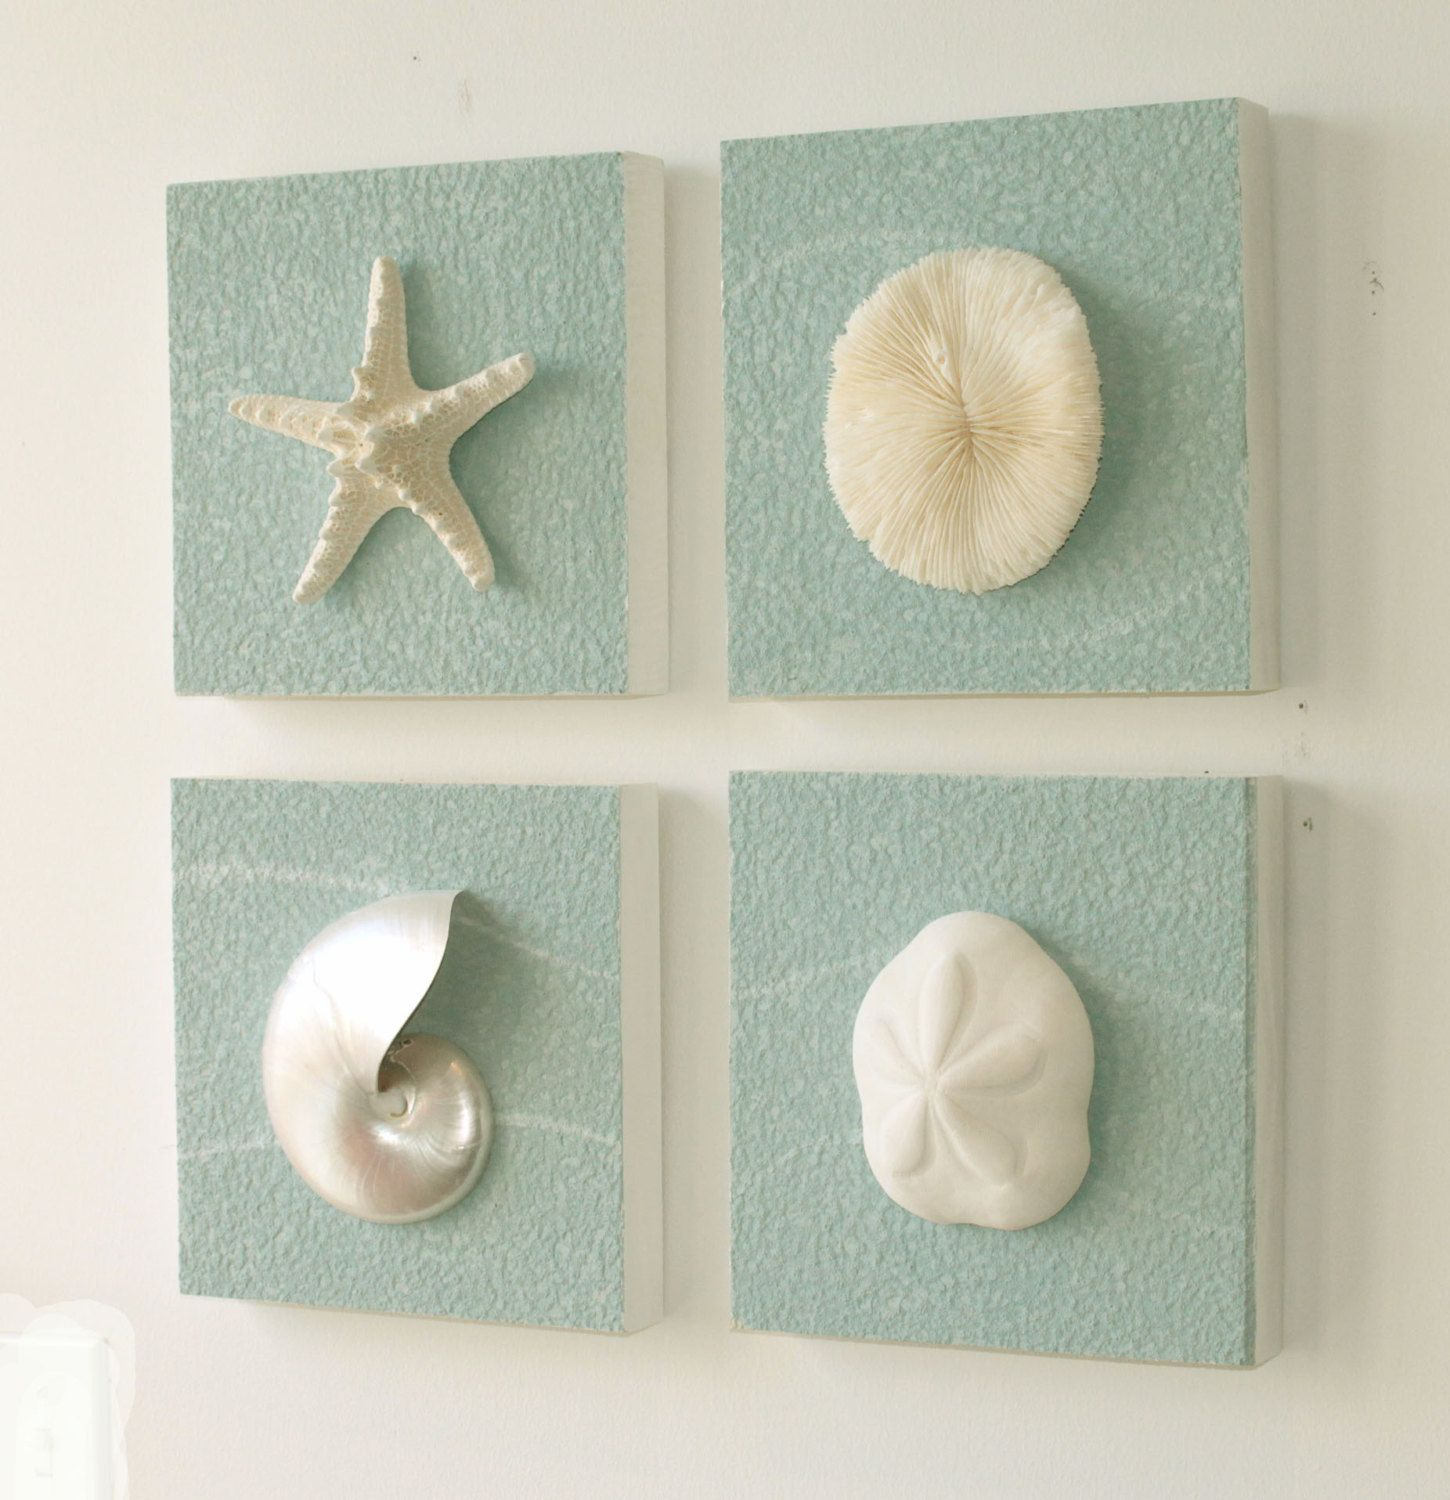 Beach Bedroom Wall Decor - Beach decor on painted driftwood panel for by beach bedroom decorcoastal wall